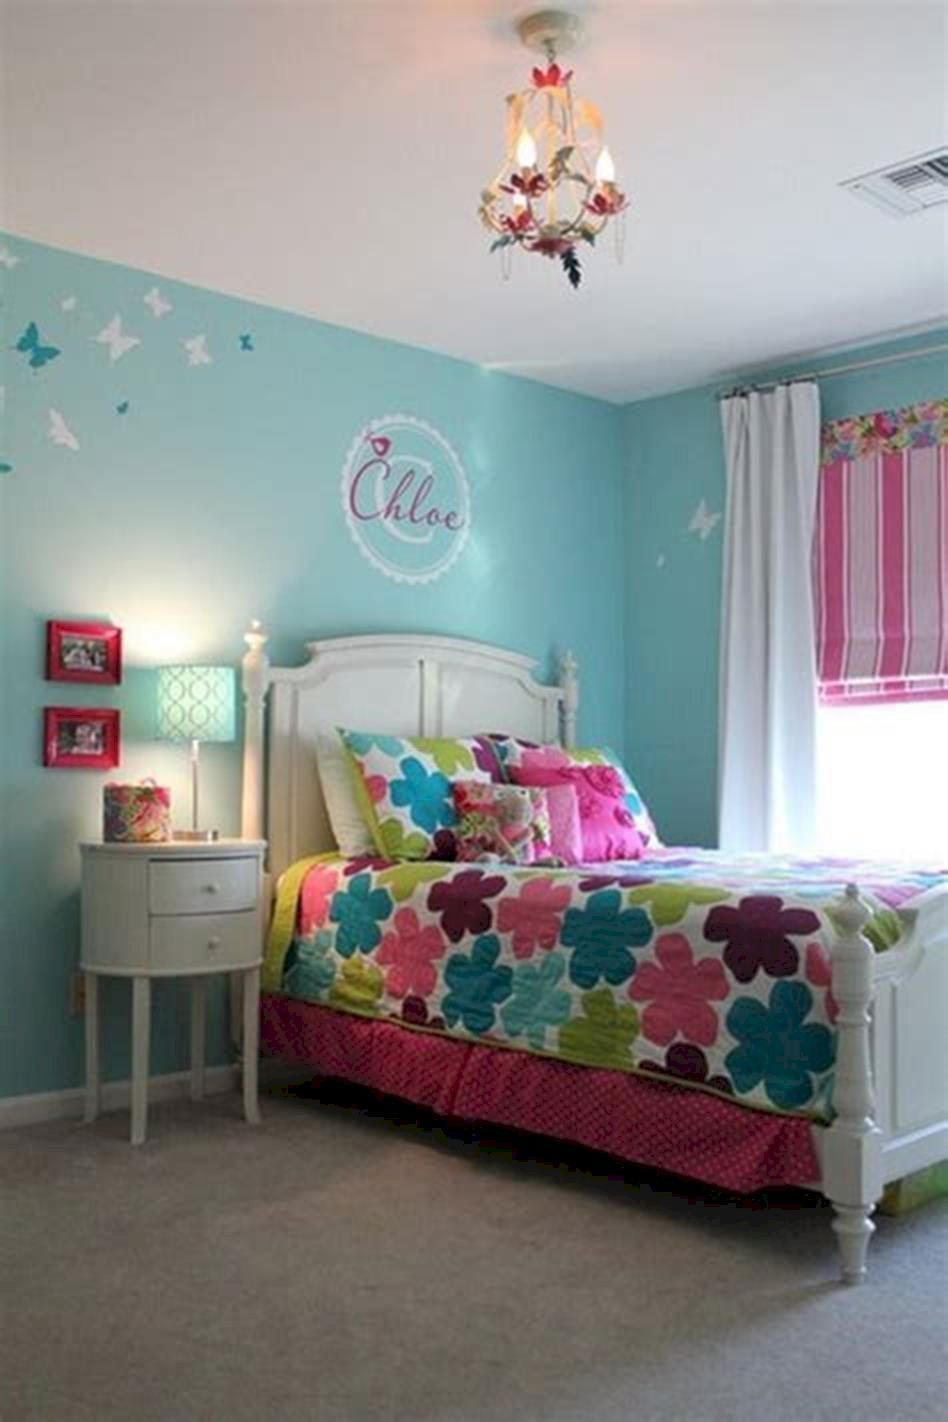 32 Amazing Paint Colors For Girls Bedrooms Girls Bedroom Color Schemes Girls Blue Bedroom Girls Room Colors